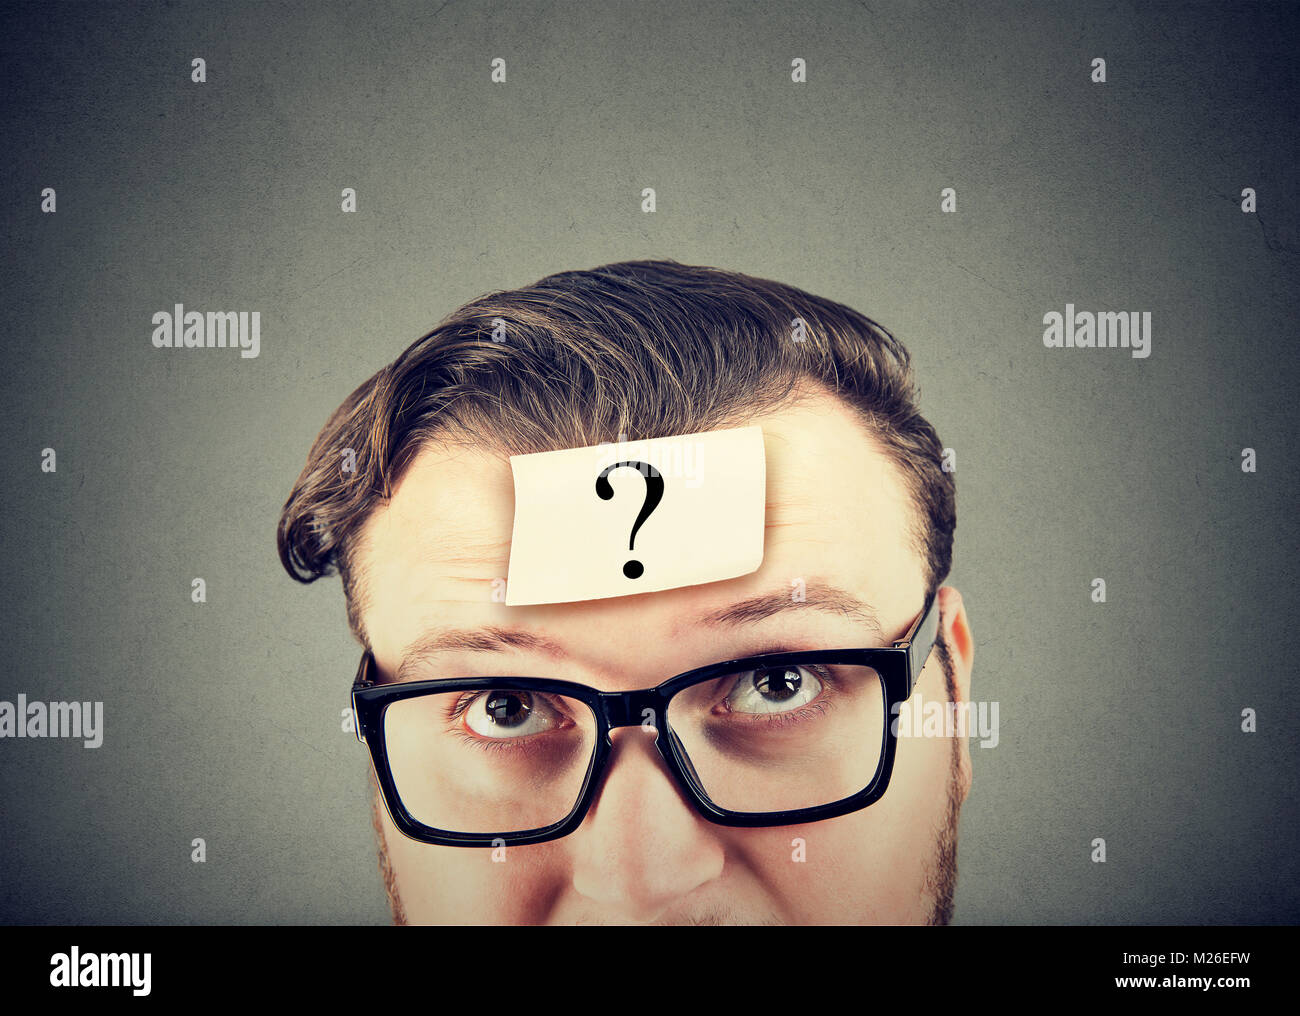 Young man in eyeglasses having question in mind looking perplexed. - Stock Image